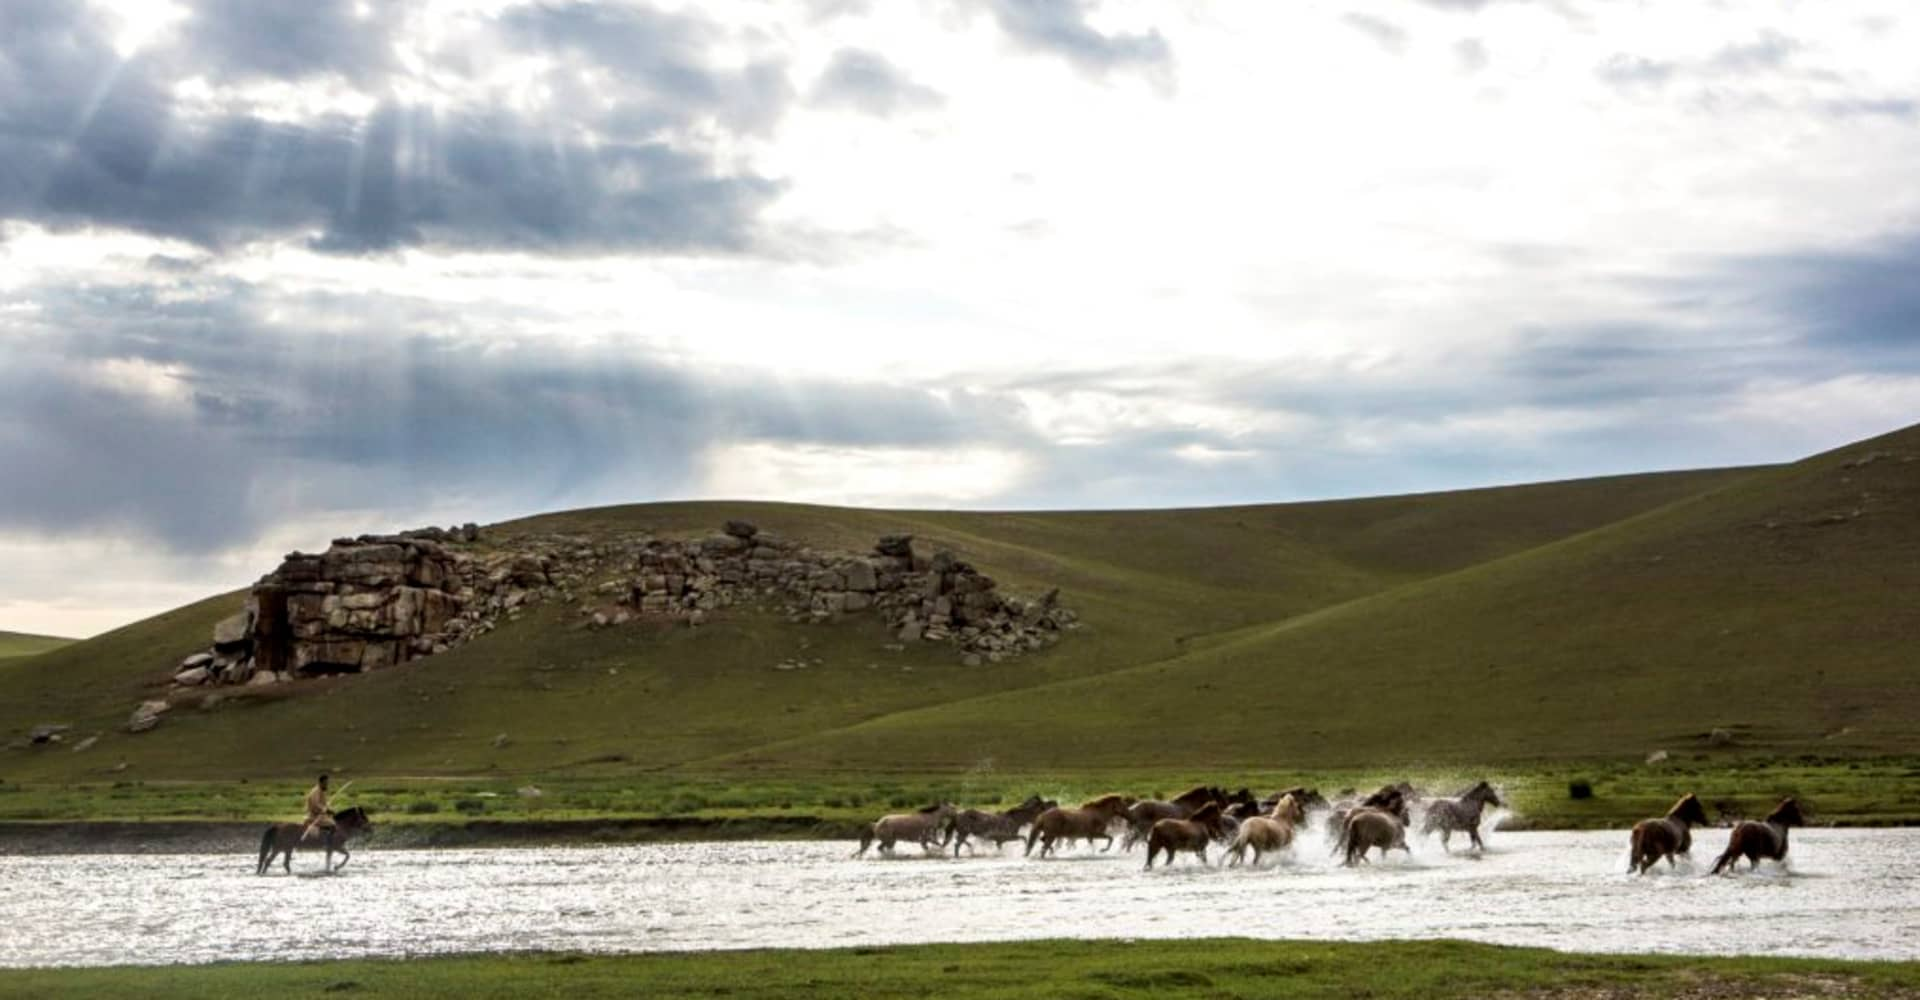 EXPERIENCES - The Pavilions Mongolia